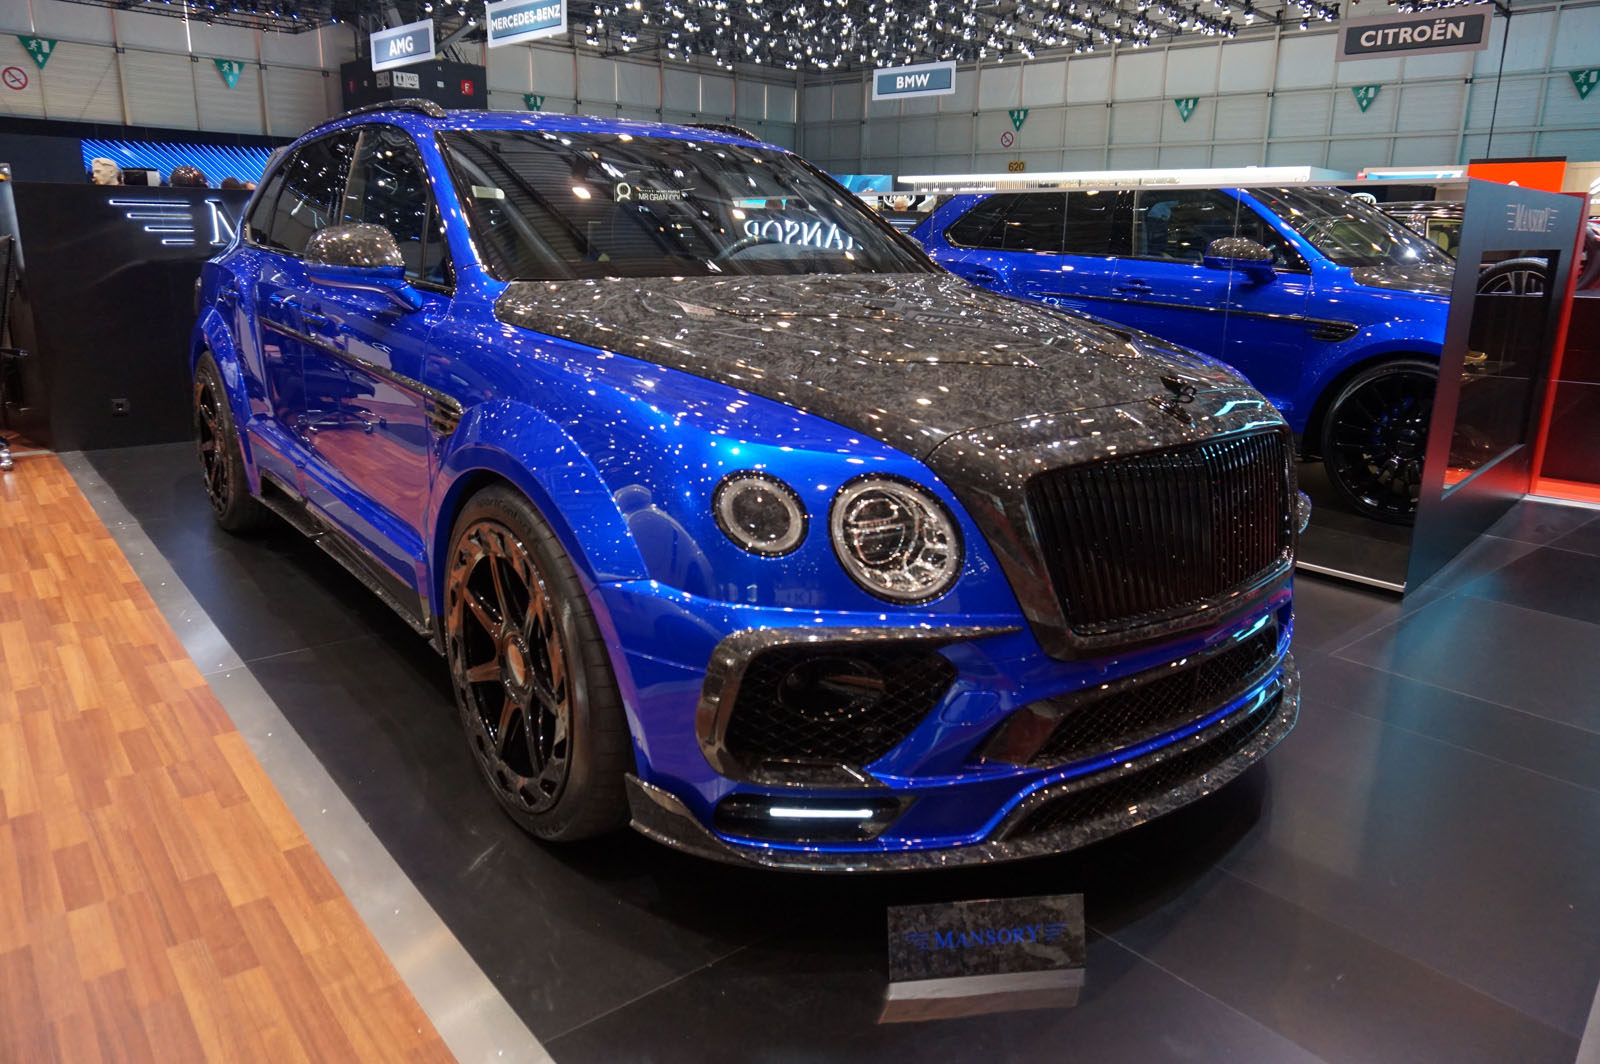 Gallery All The Tacky Exotic Cars Mansory Brought To Geneva - Luxury car show 2018